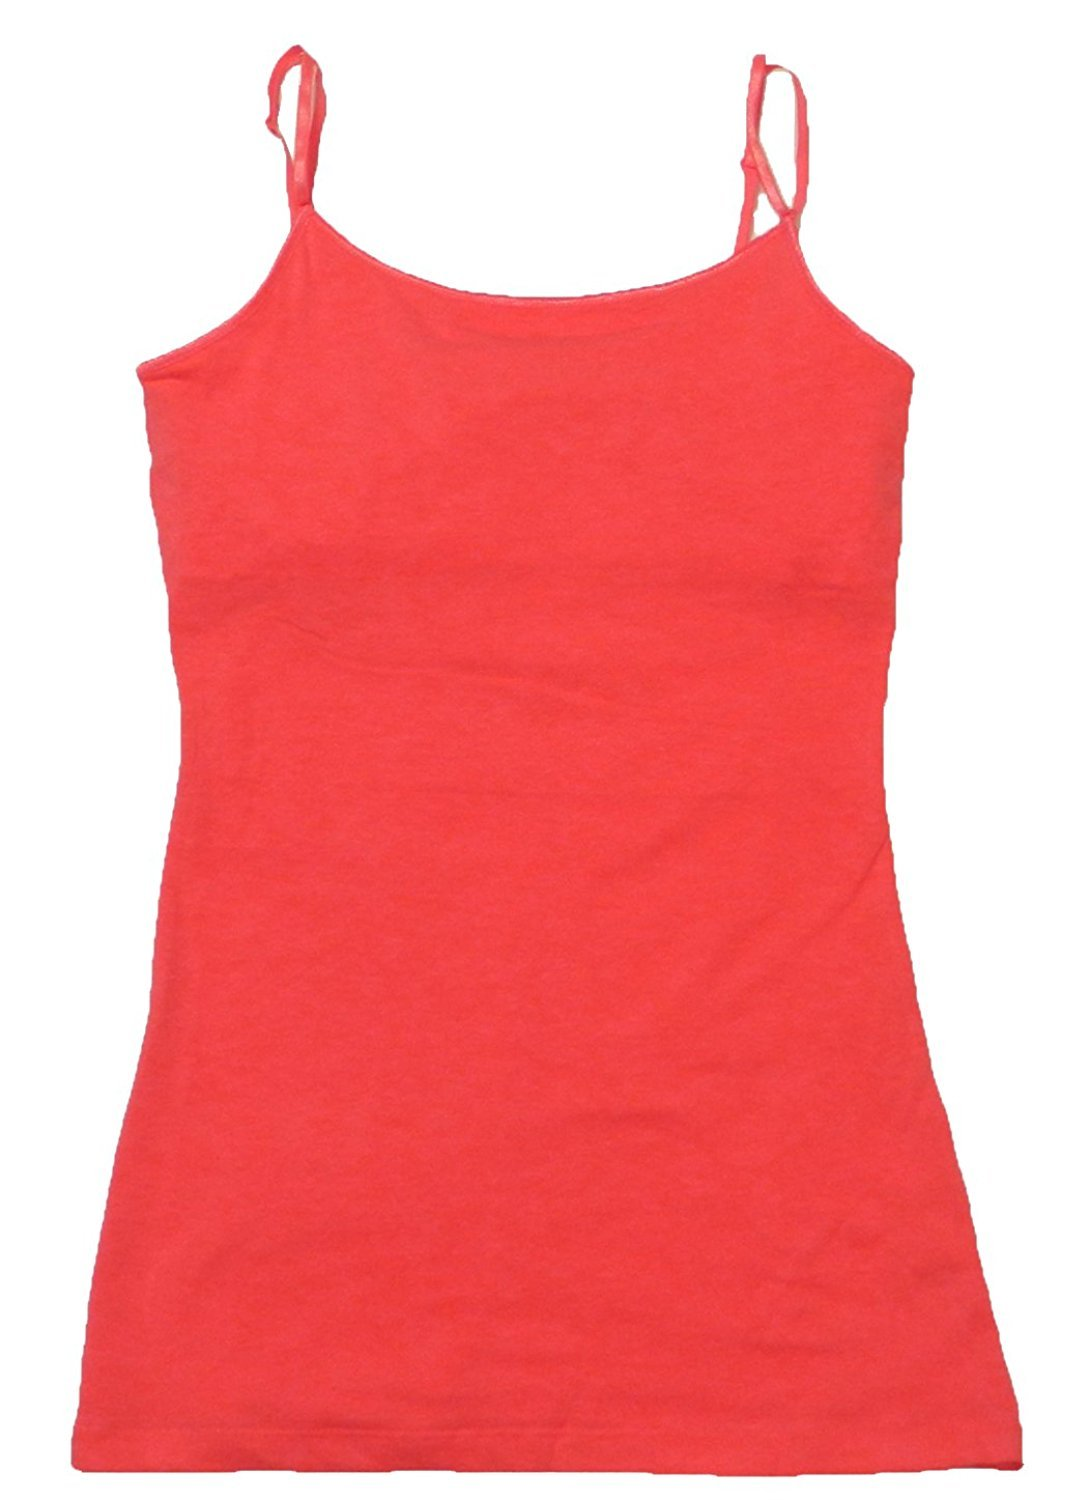 Cami Camisole Built in Shelf BRA Adjustable Spaghetti Strap Tank Top